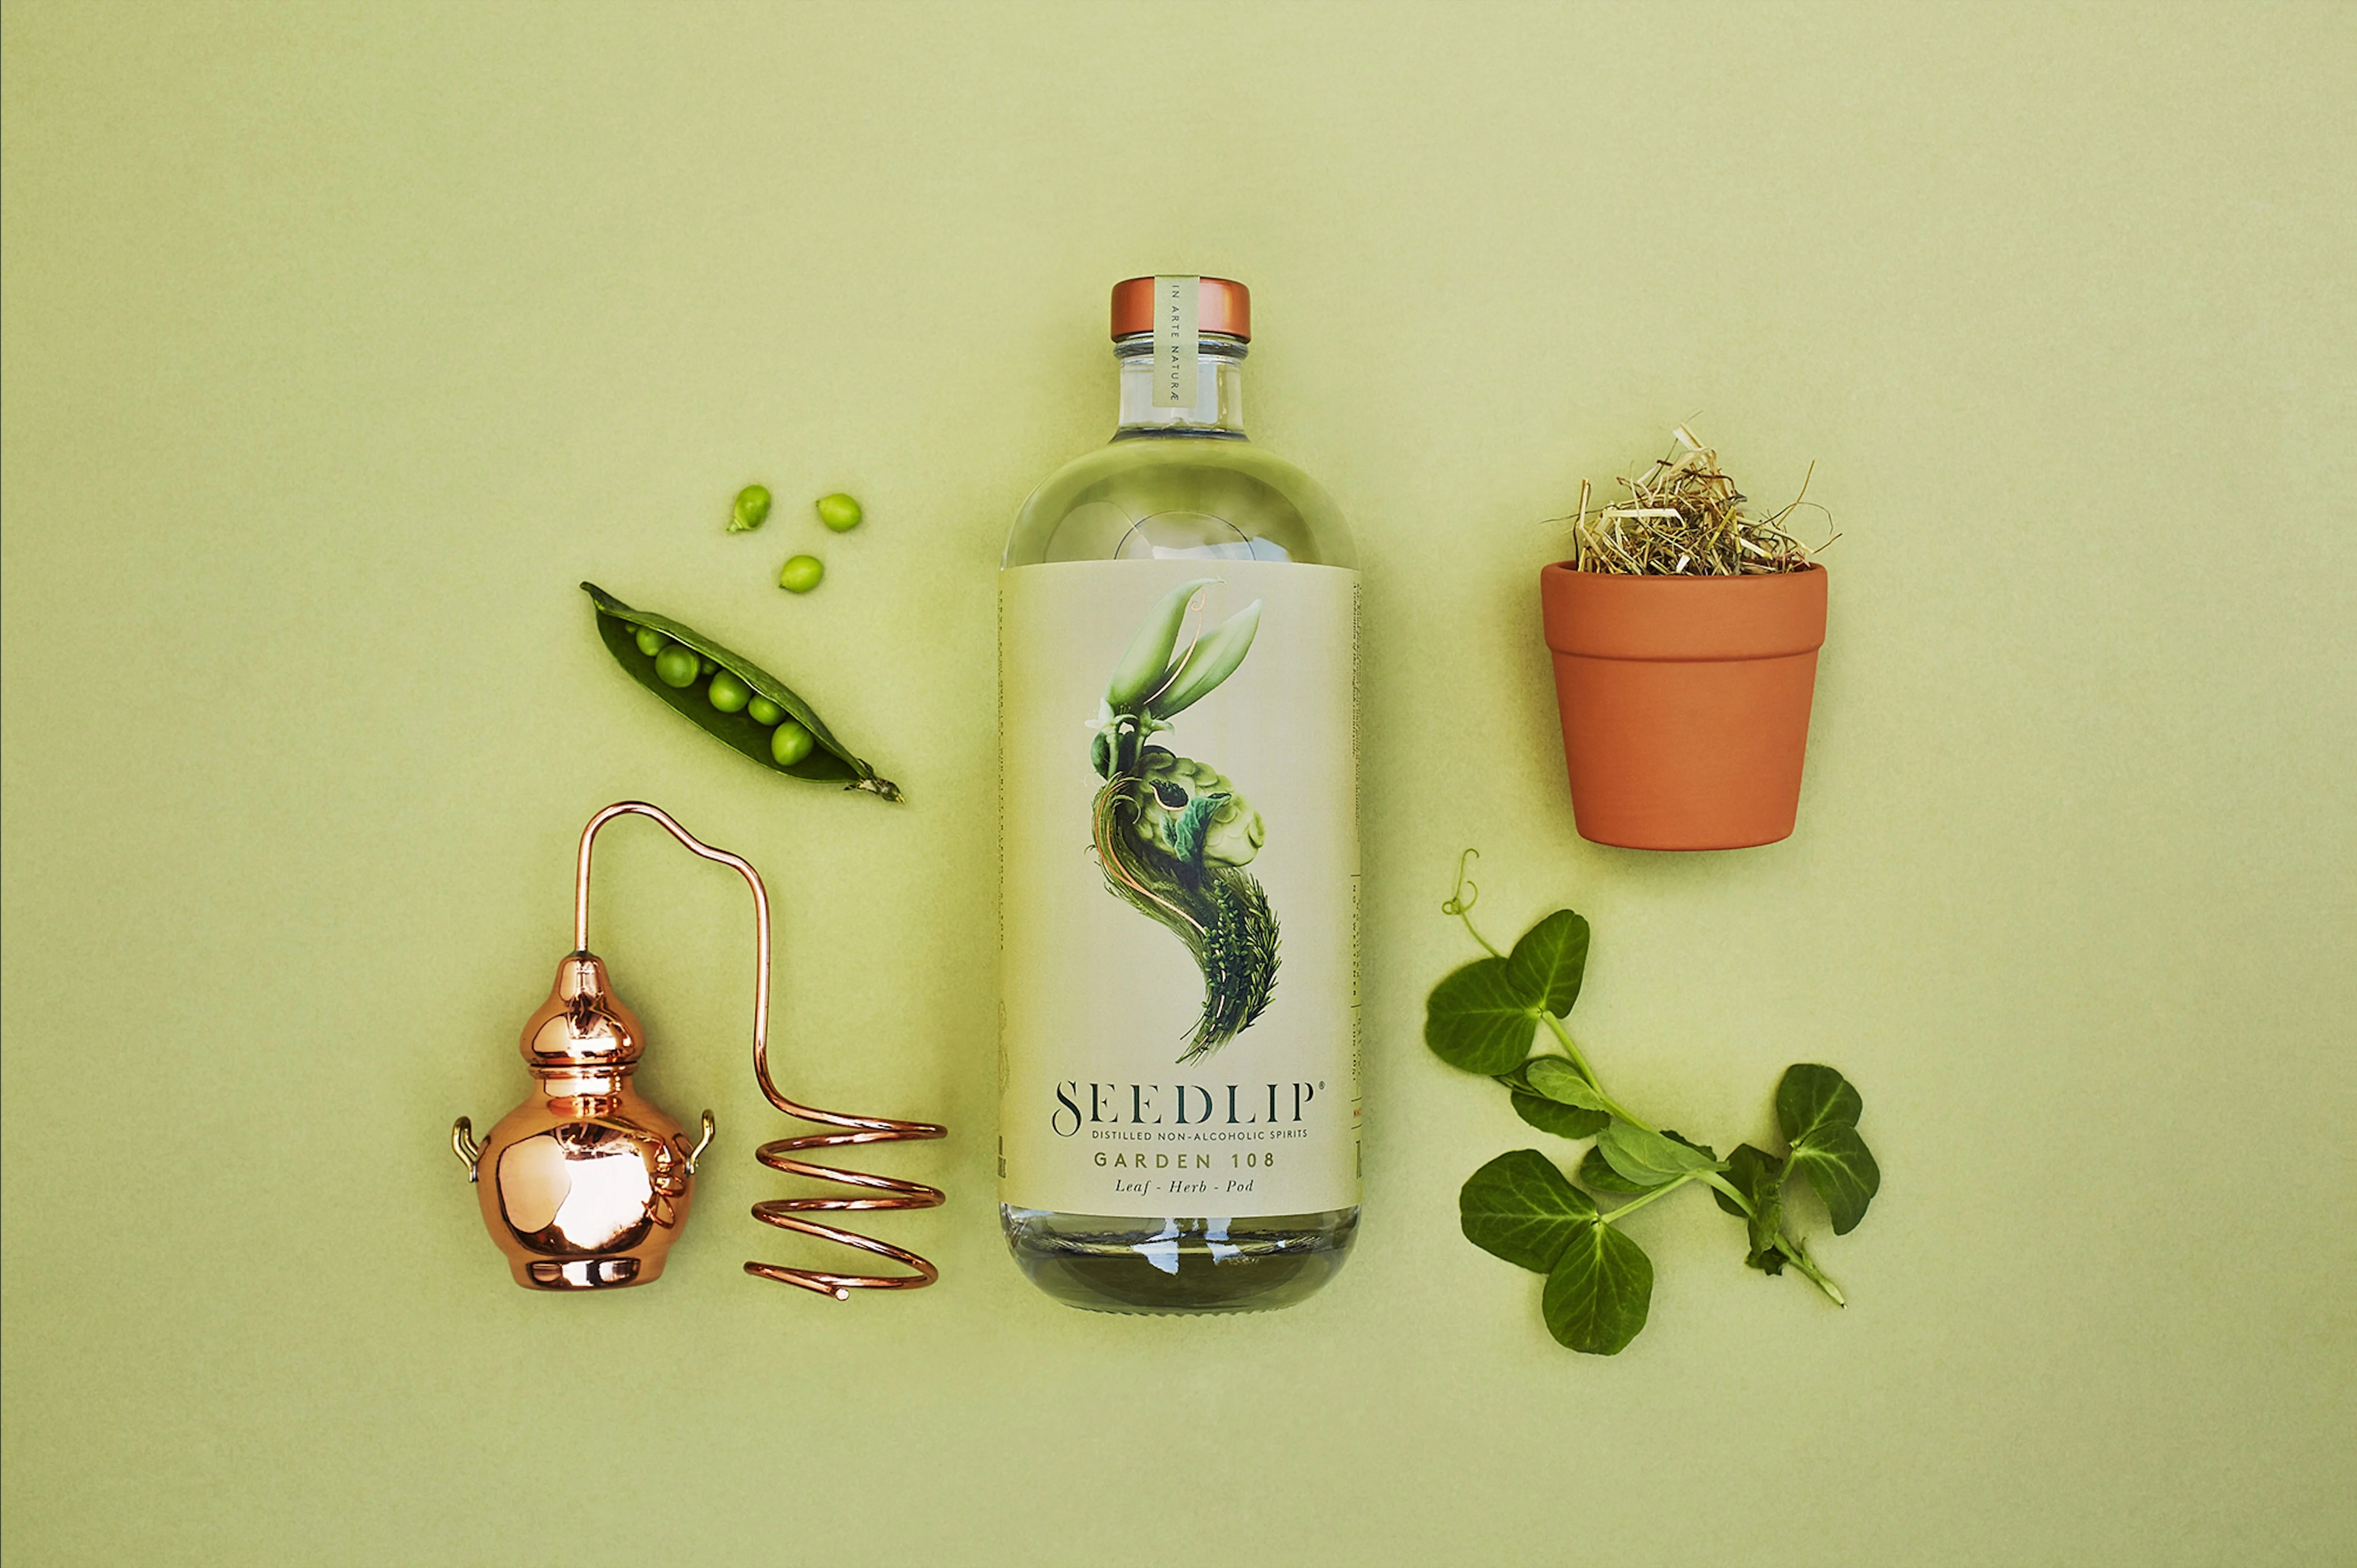 Arte Dekor Blanca Bar White Would You Pay 325 For A Non Alcoholic Spirit Seedlip Hopes You